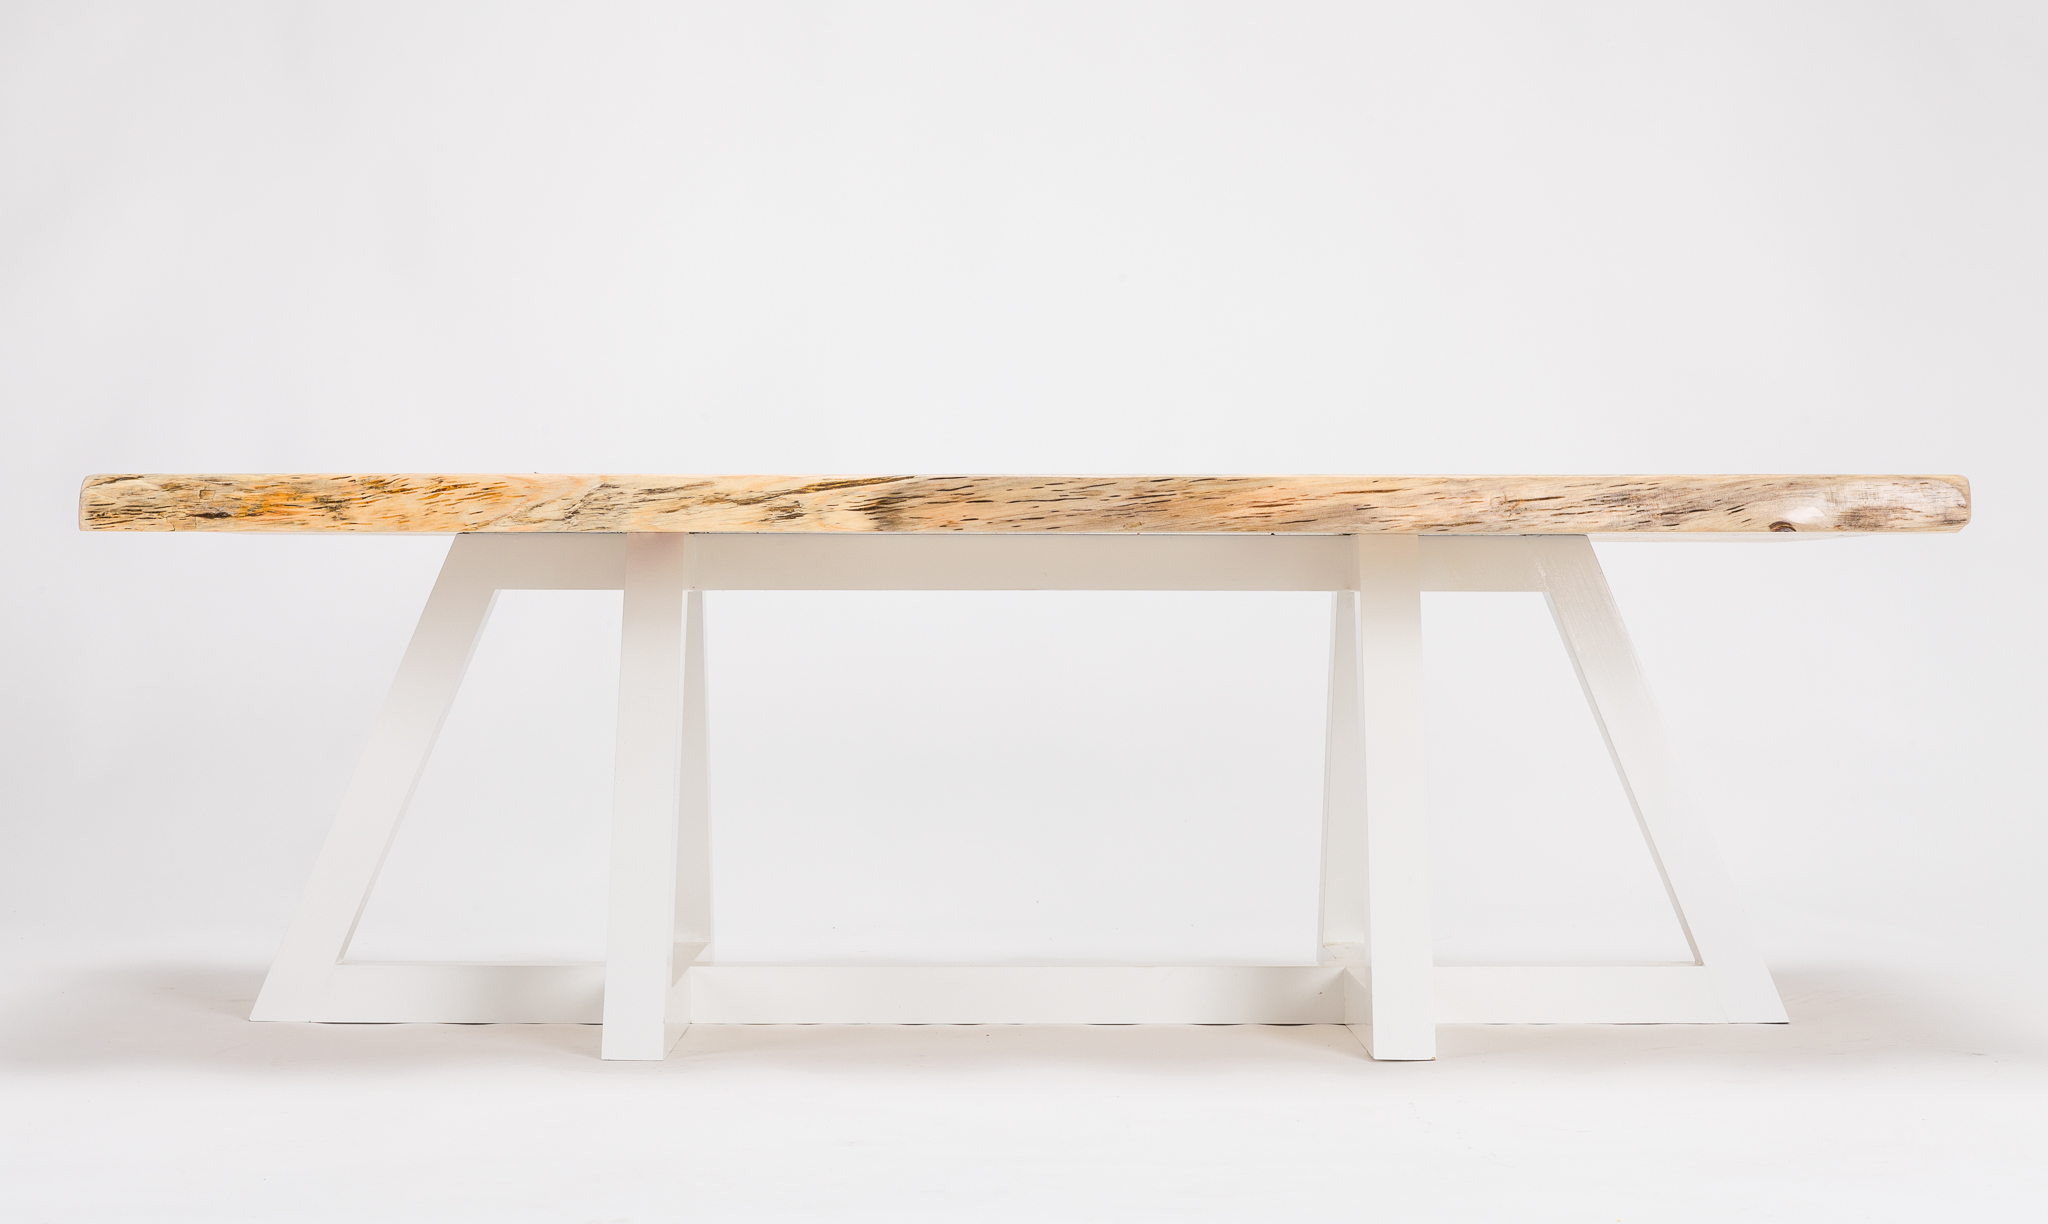 Lived Edge Table